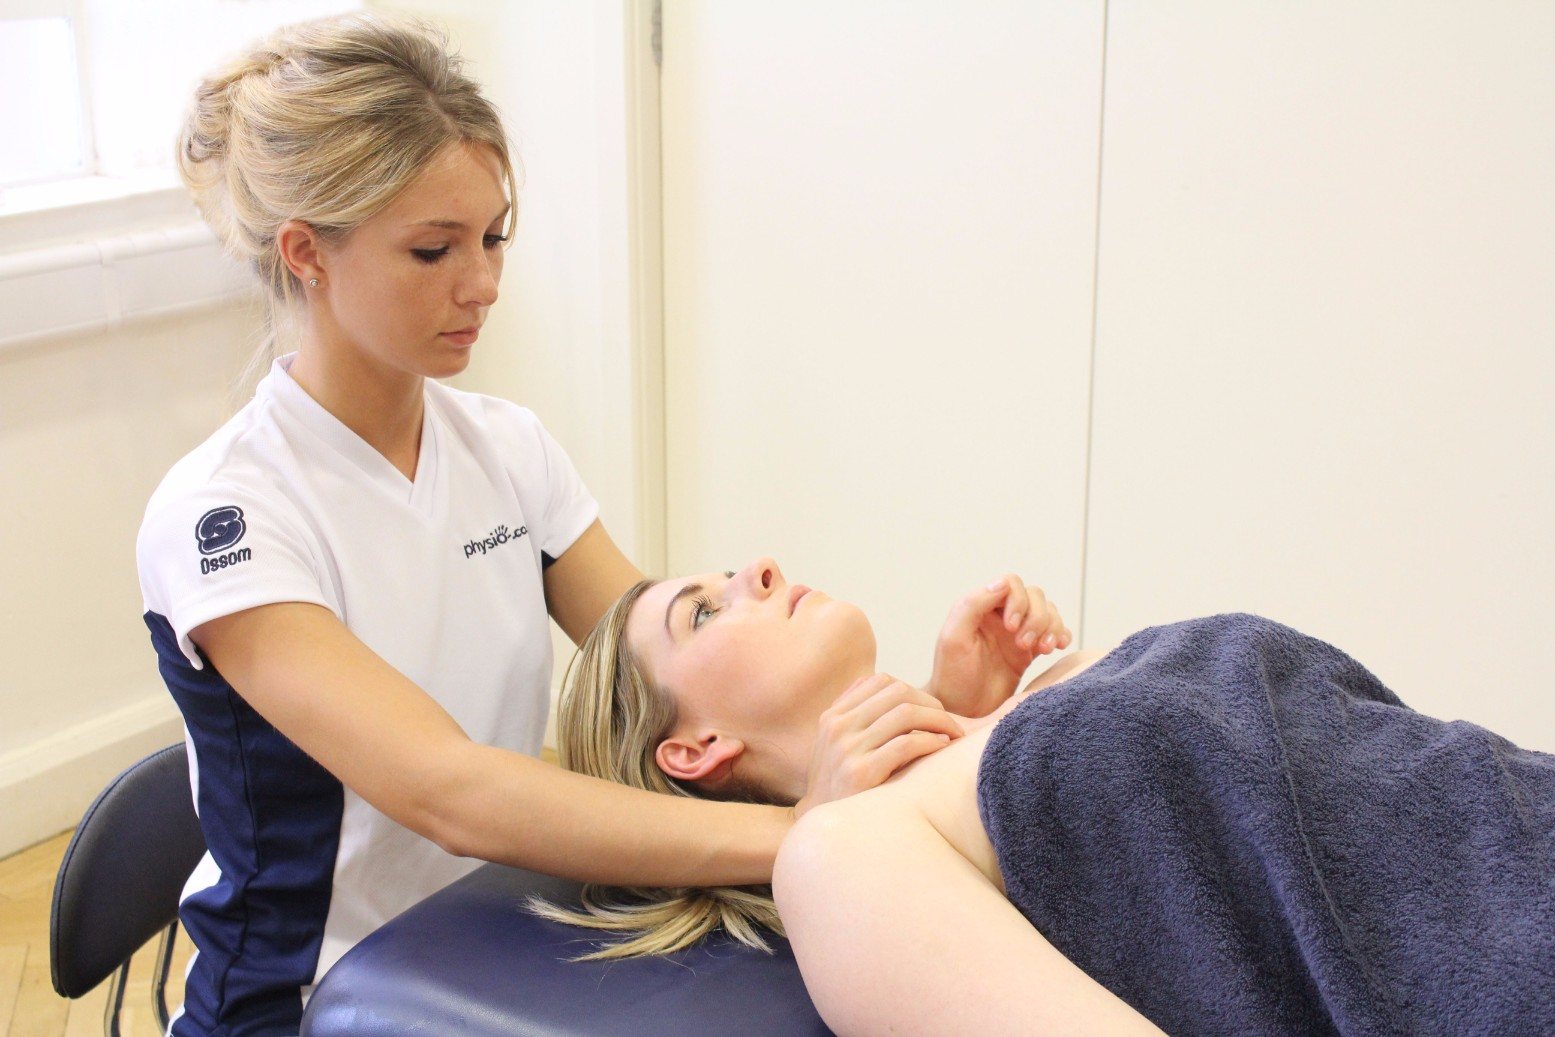 Katie delivering a sports massage to a patient.